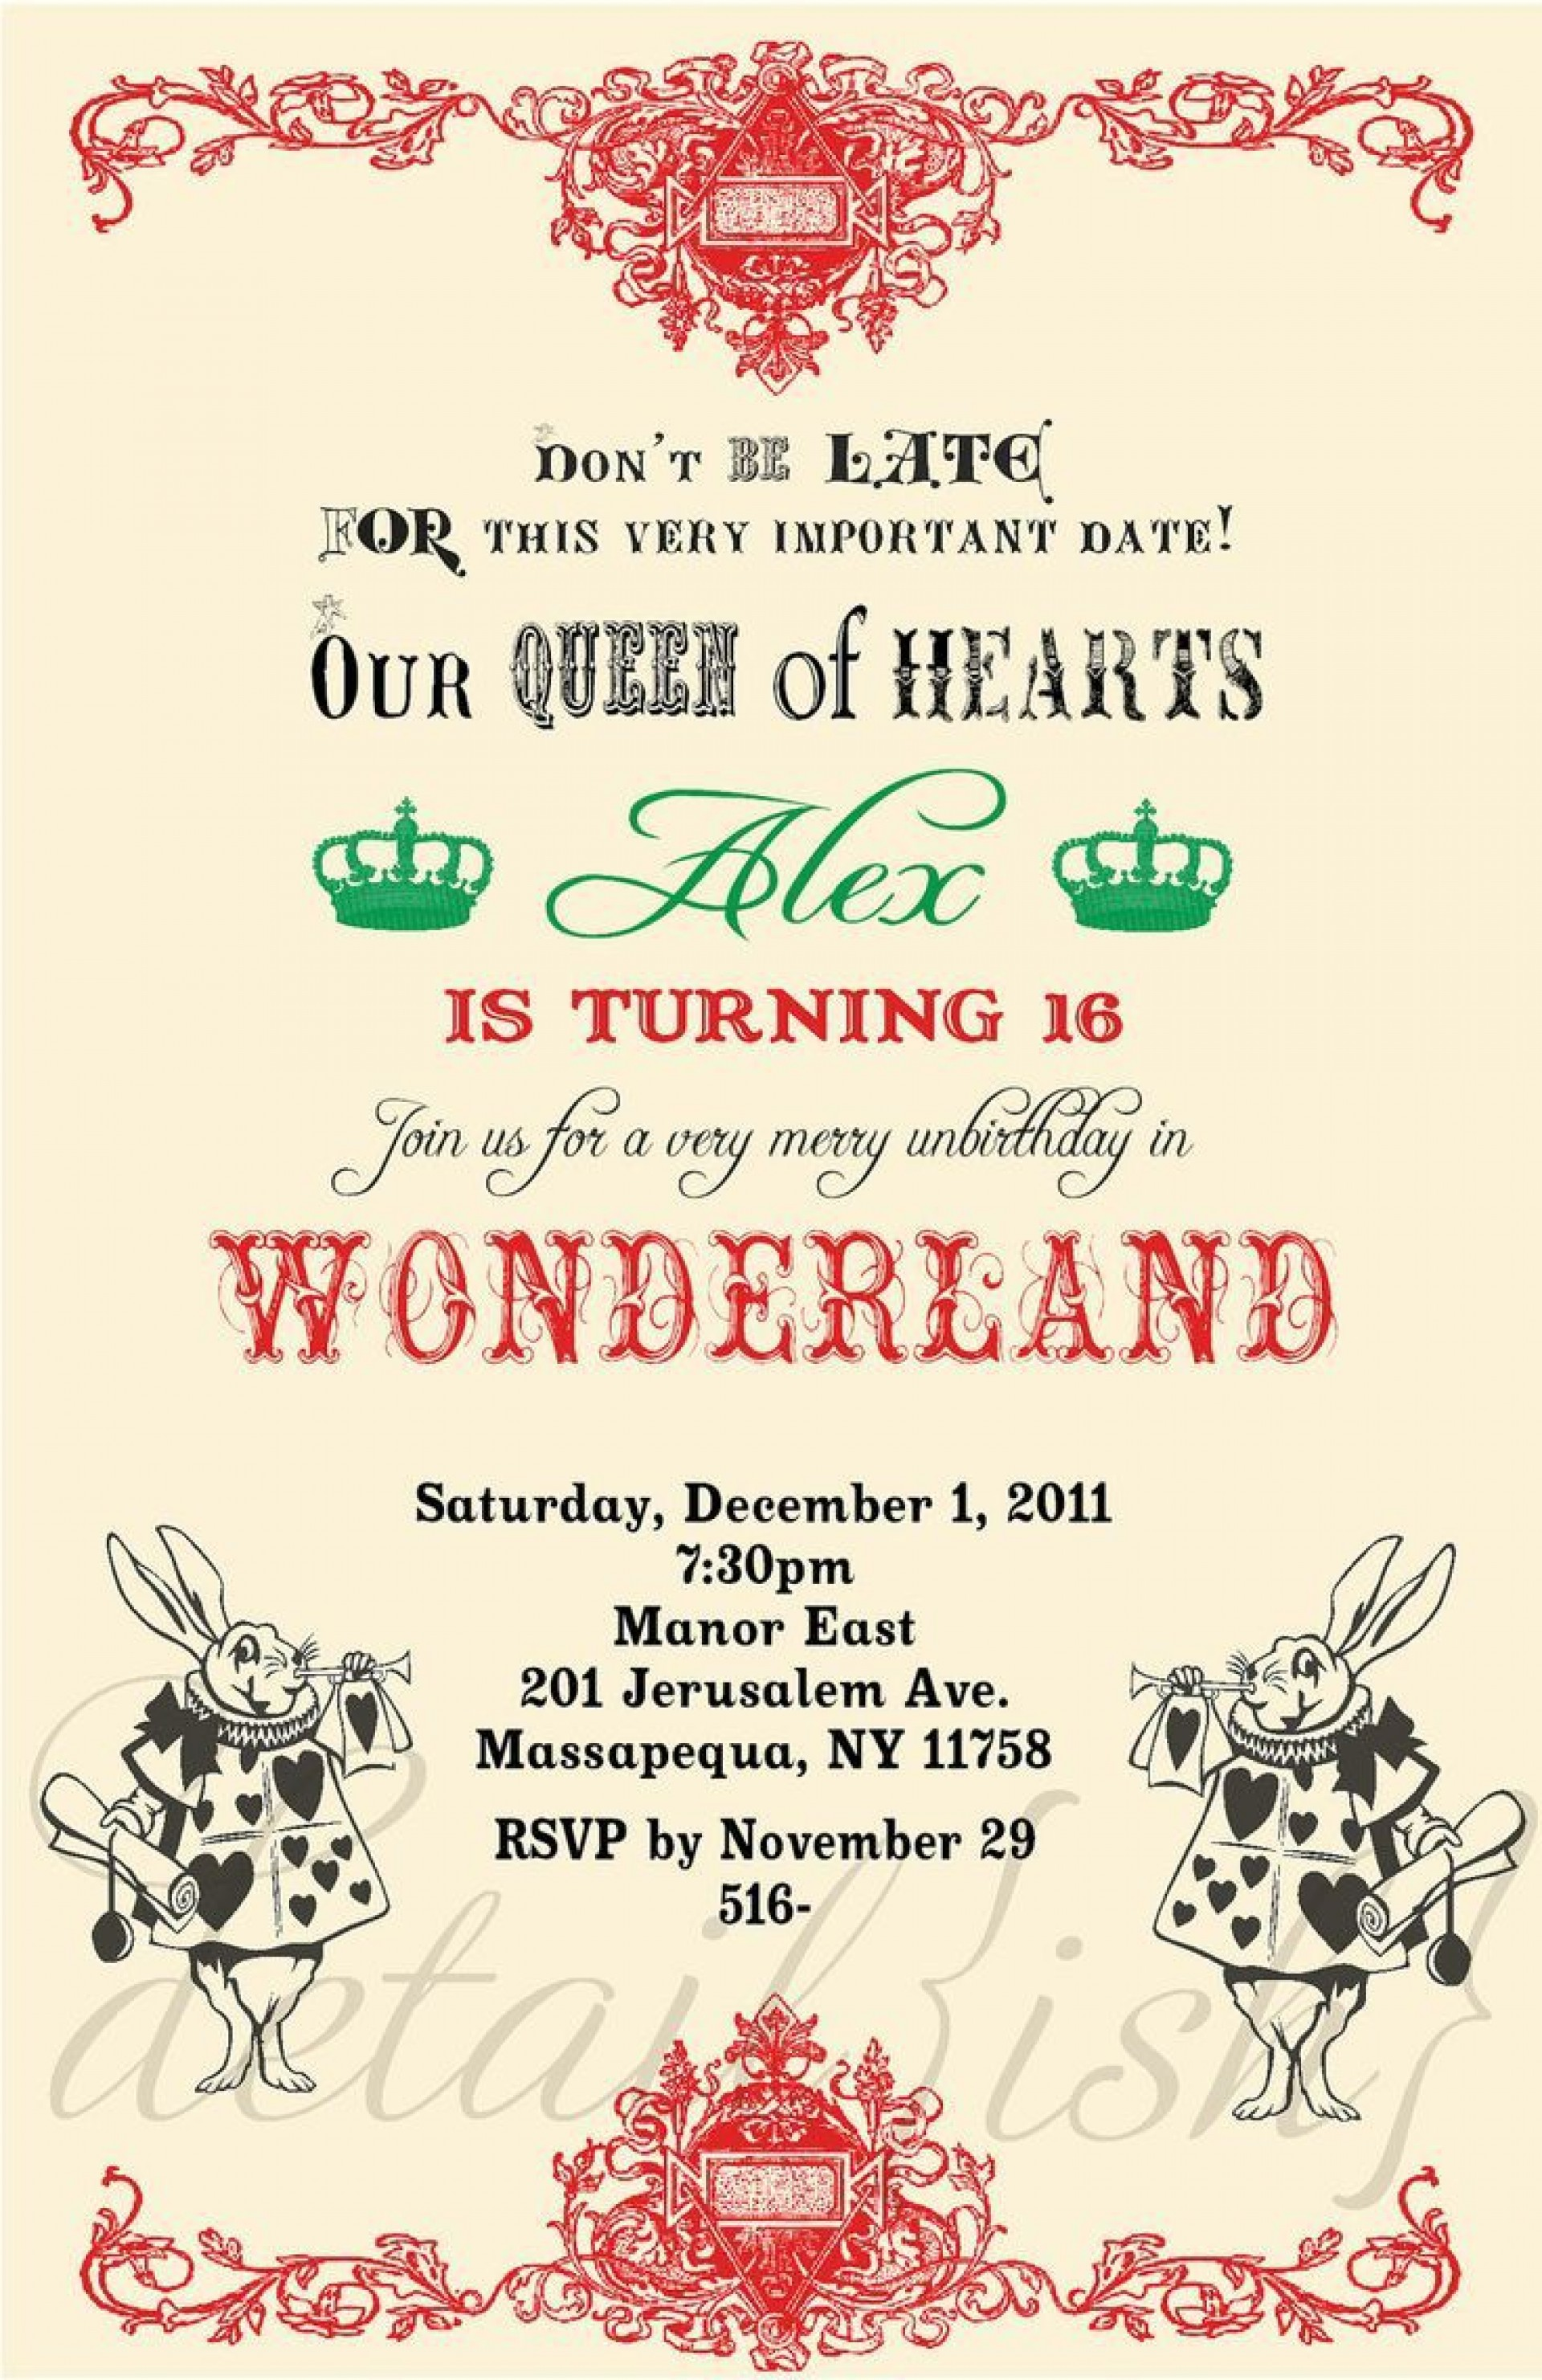 009 Unforgettable Alice In Wonderland Party Template Image  Templates Invitation Free1920